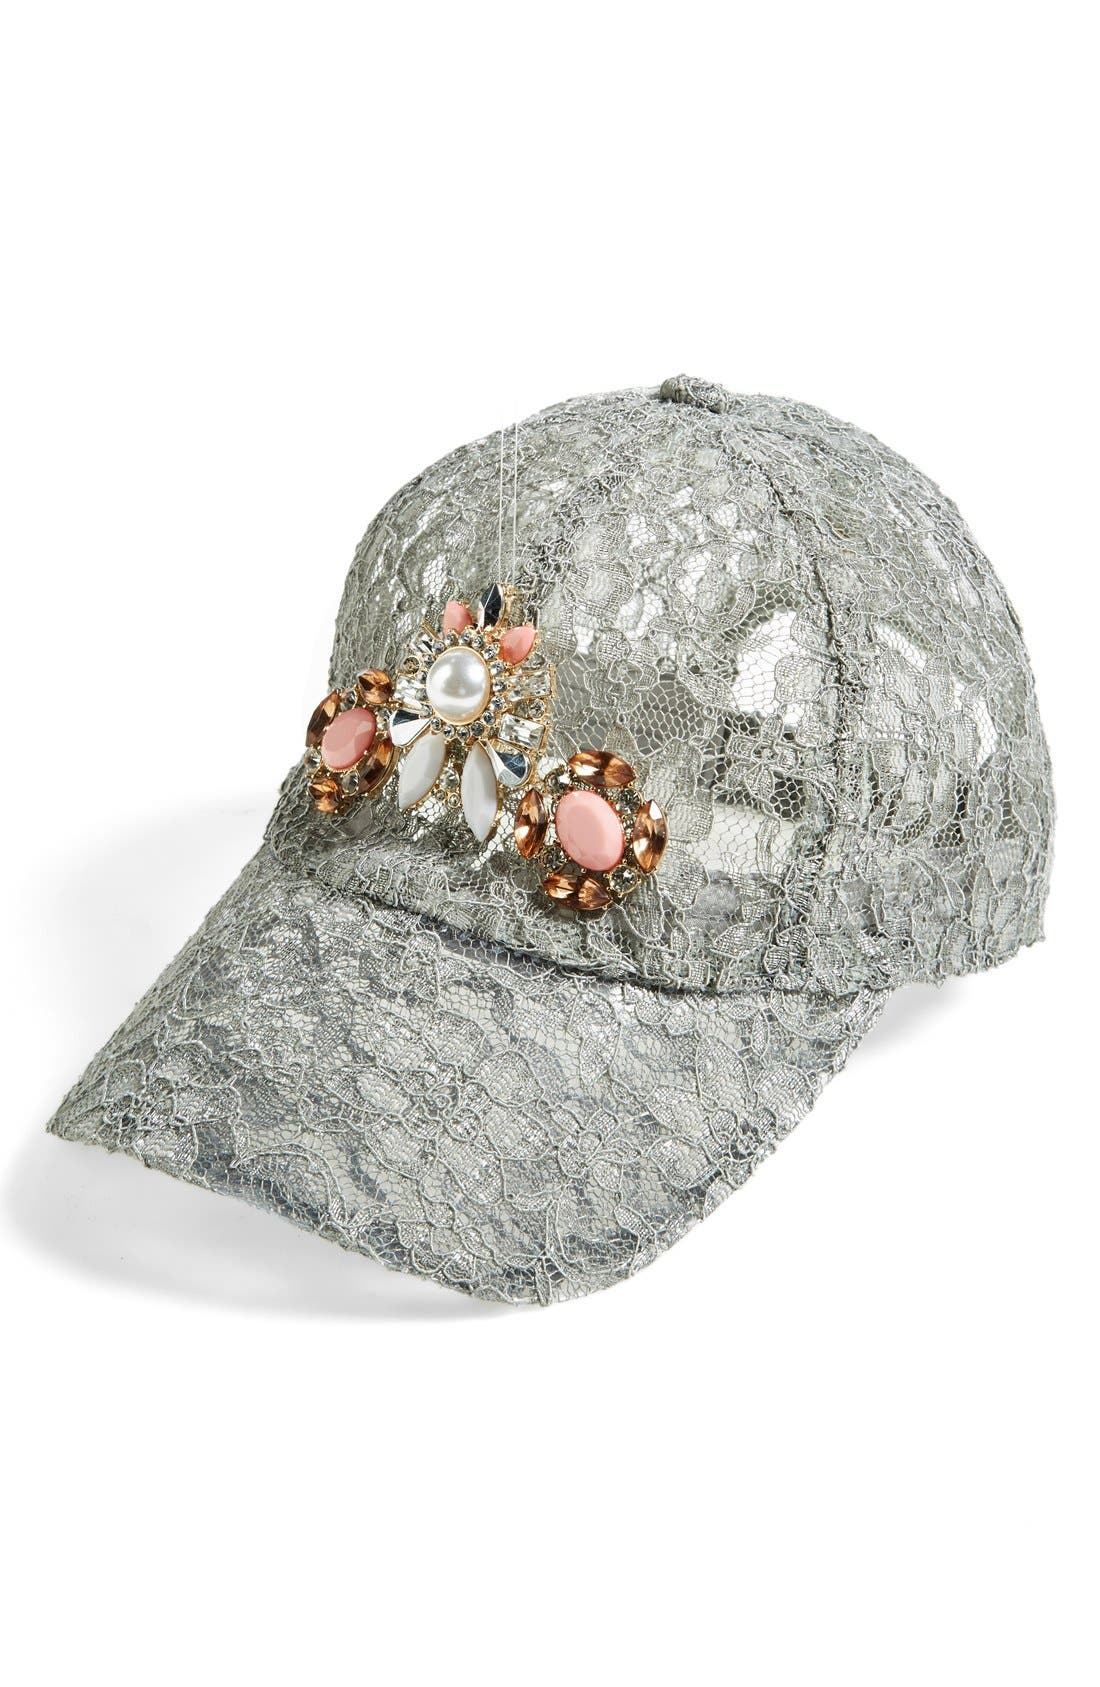 BERRY Embellished Lace Baseball Cap, Main, color, 020